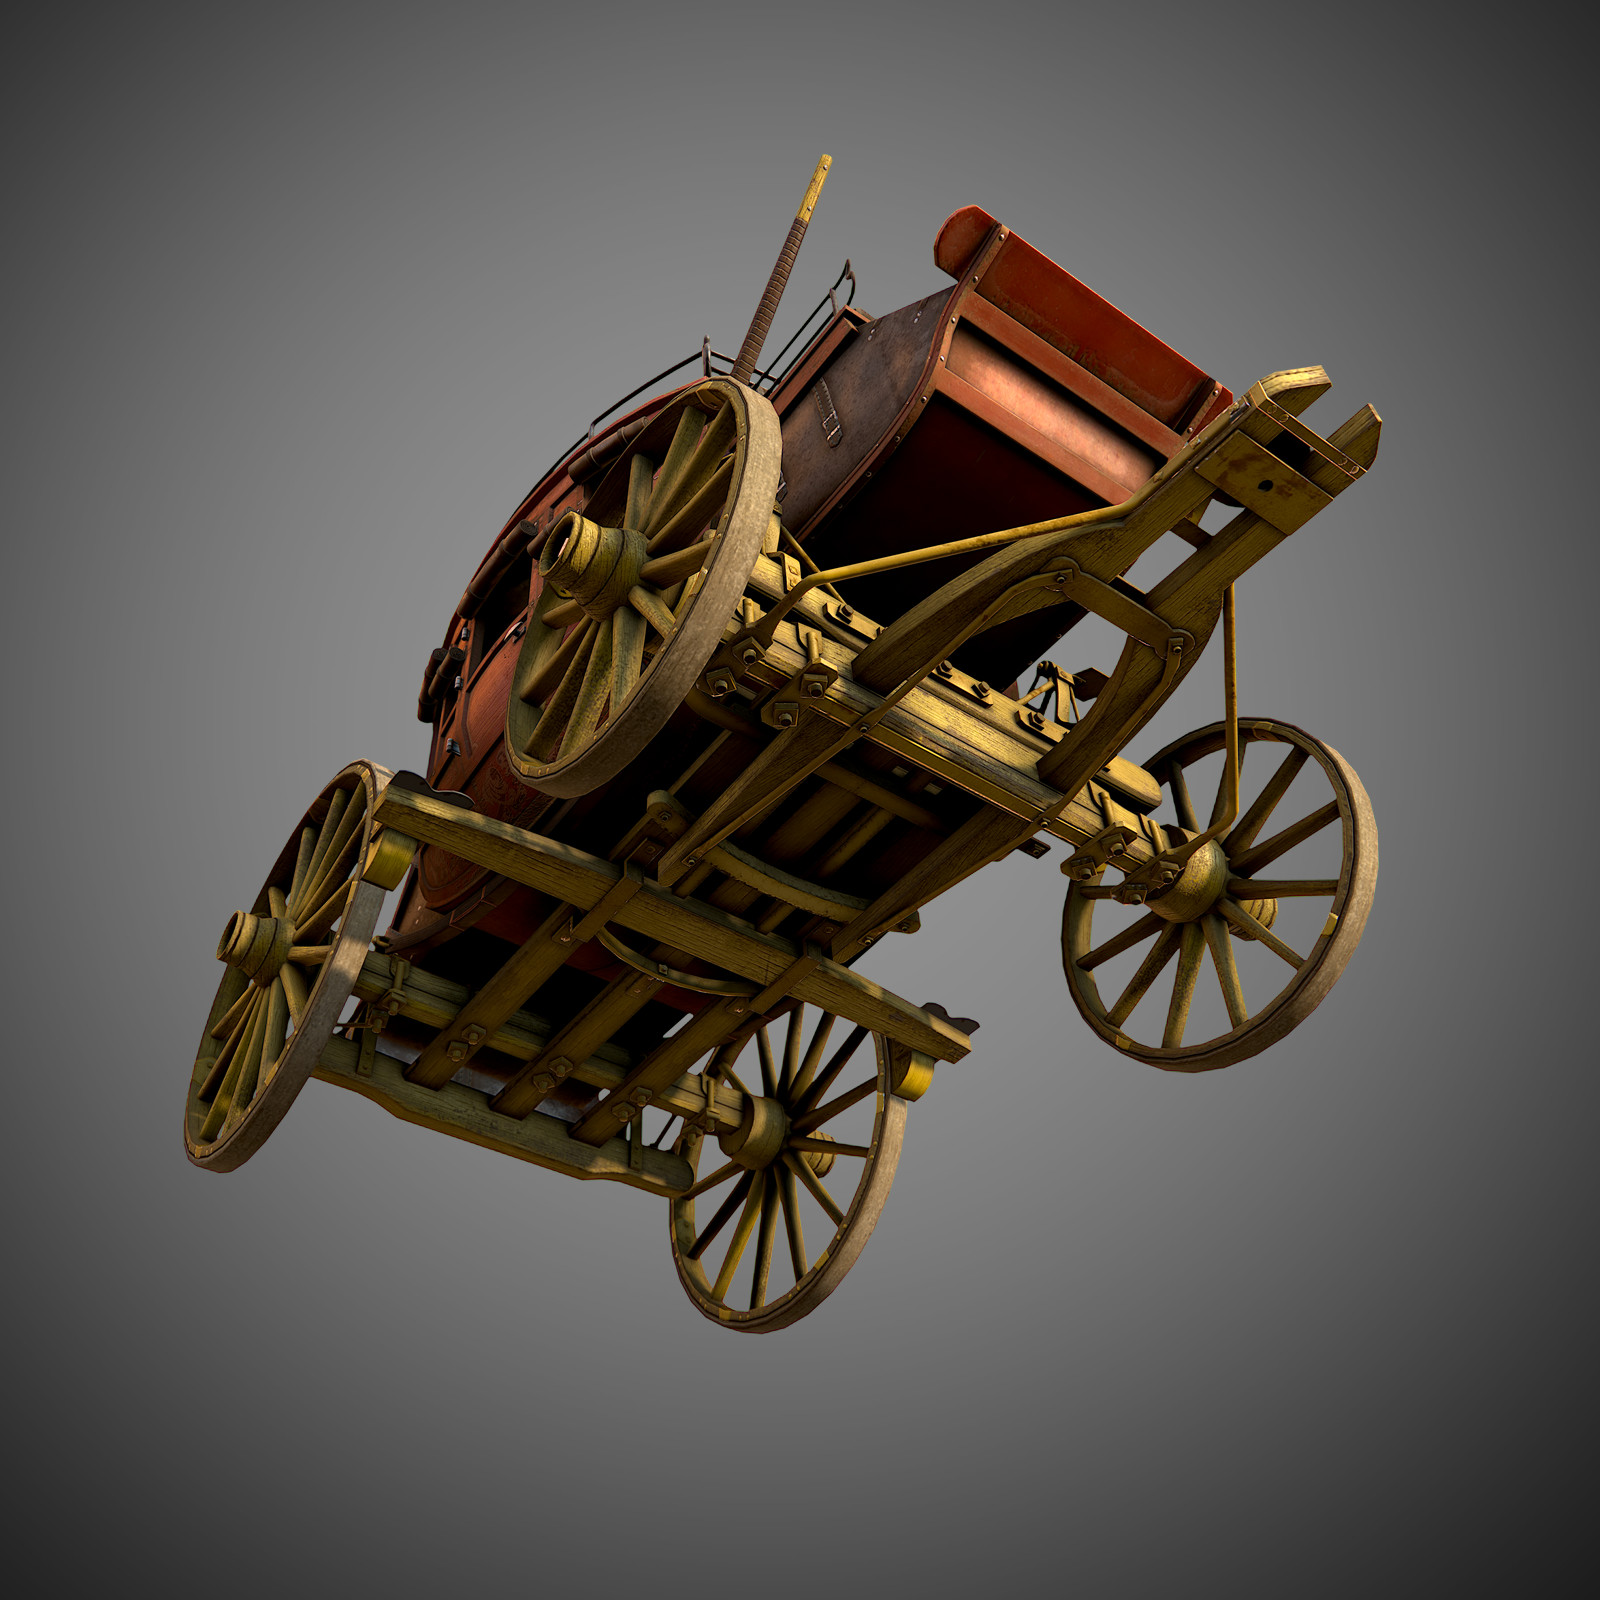 Paul fish stagecoach render 06